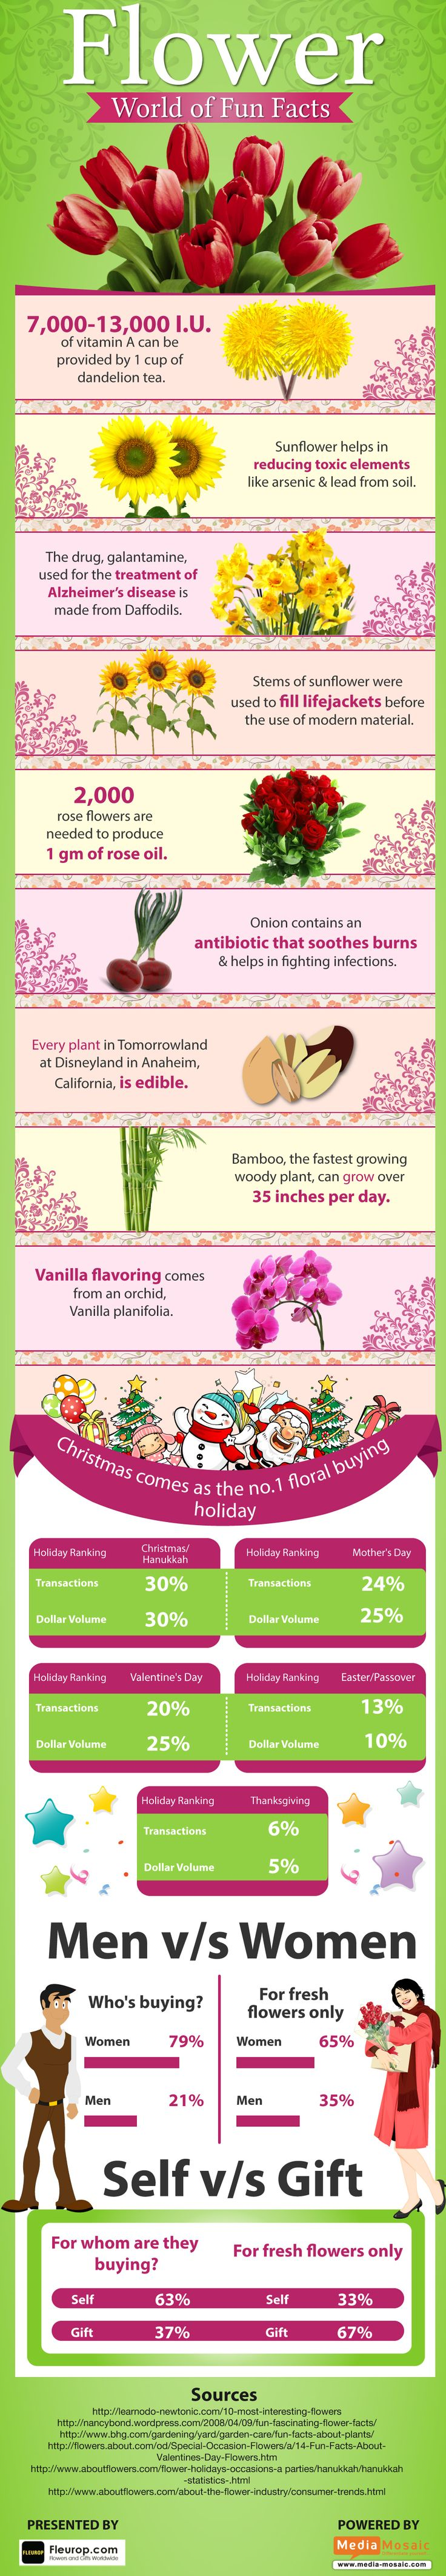 Flower World of Fun Facts